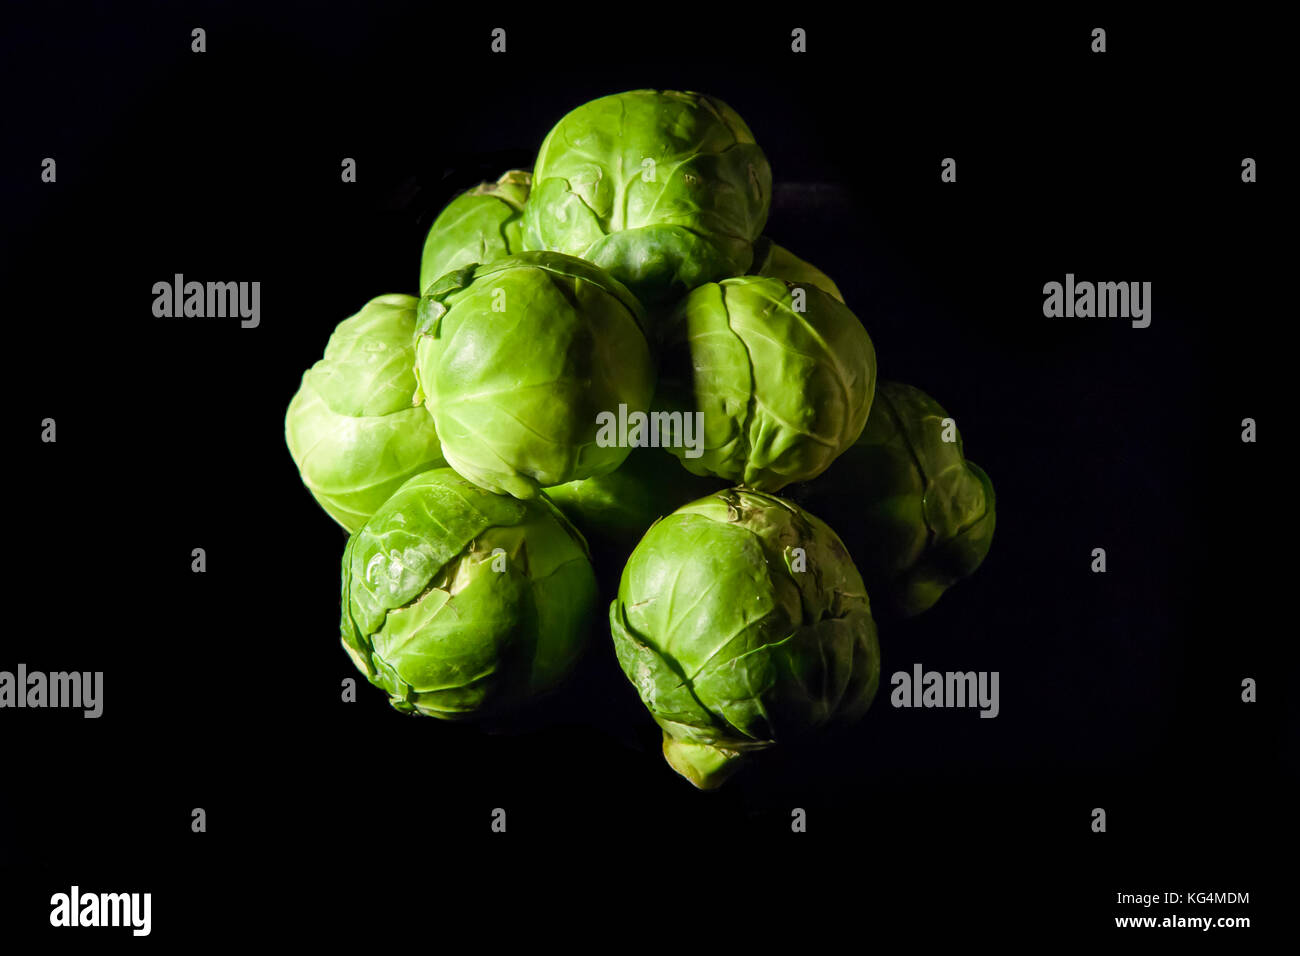 pile of green brussel sprouts - Stock Image